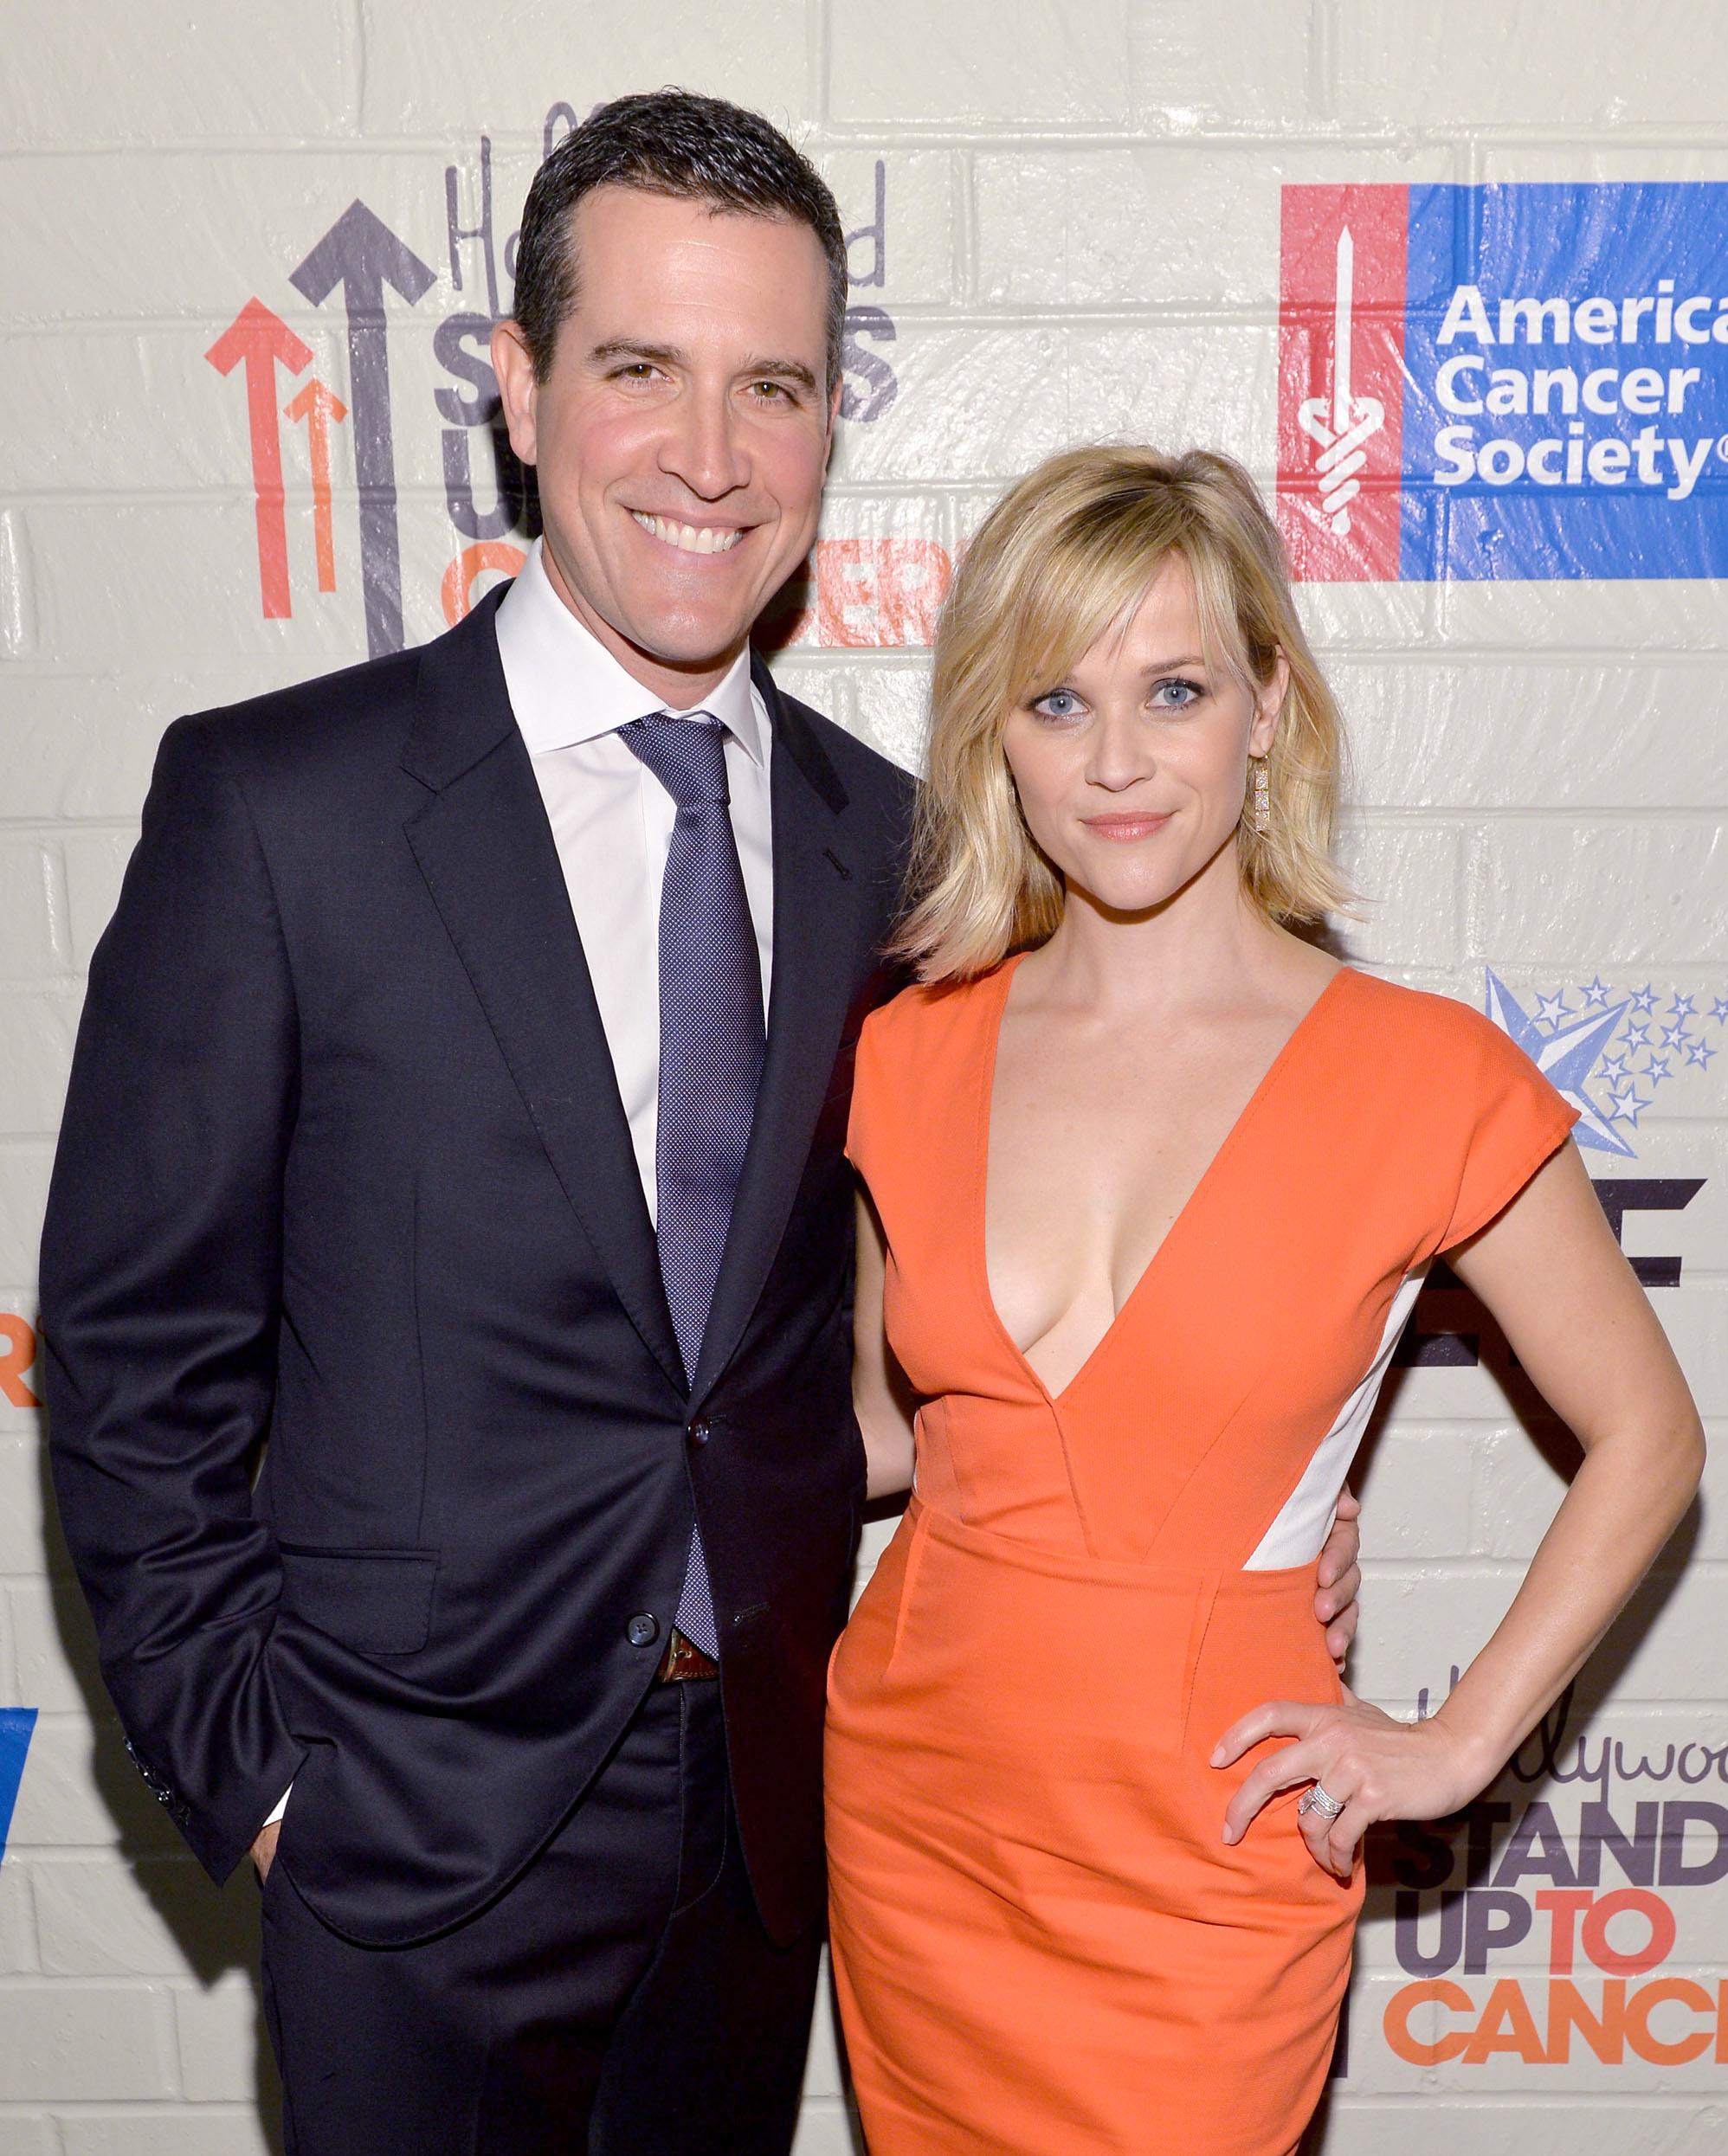 celebrings-witherspoon-0715.jpg